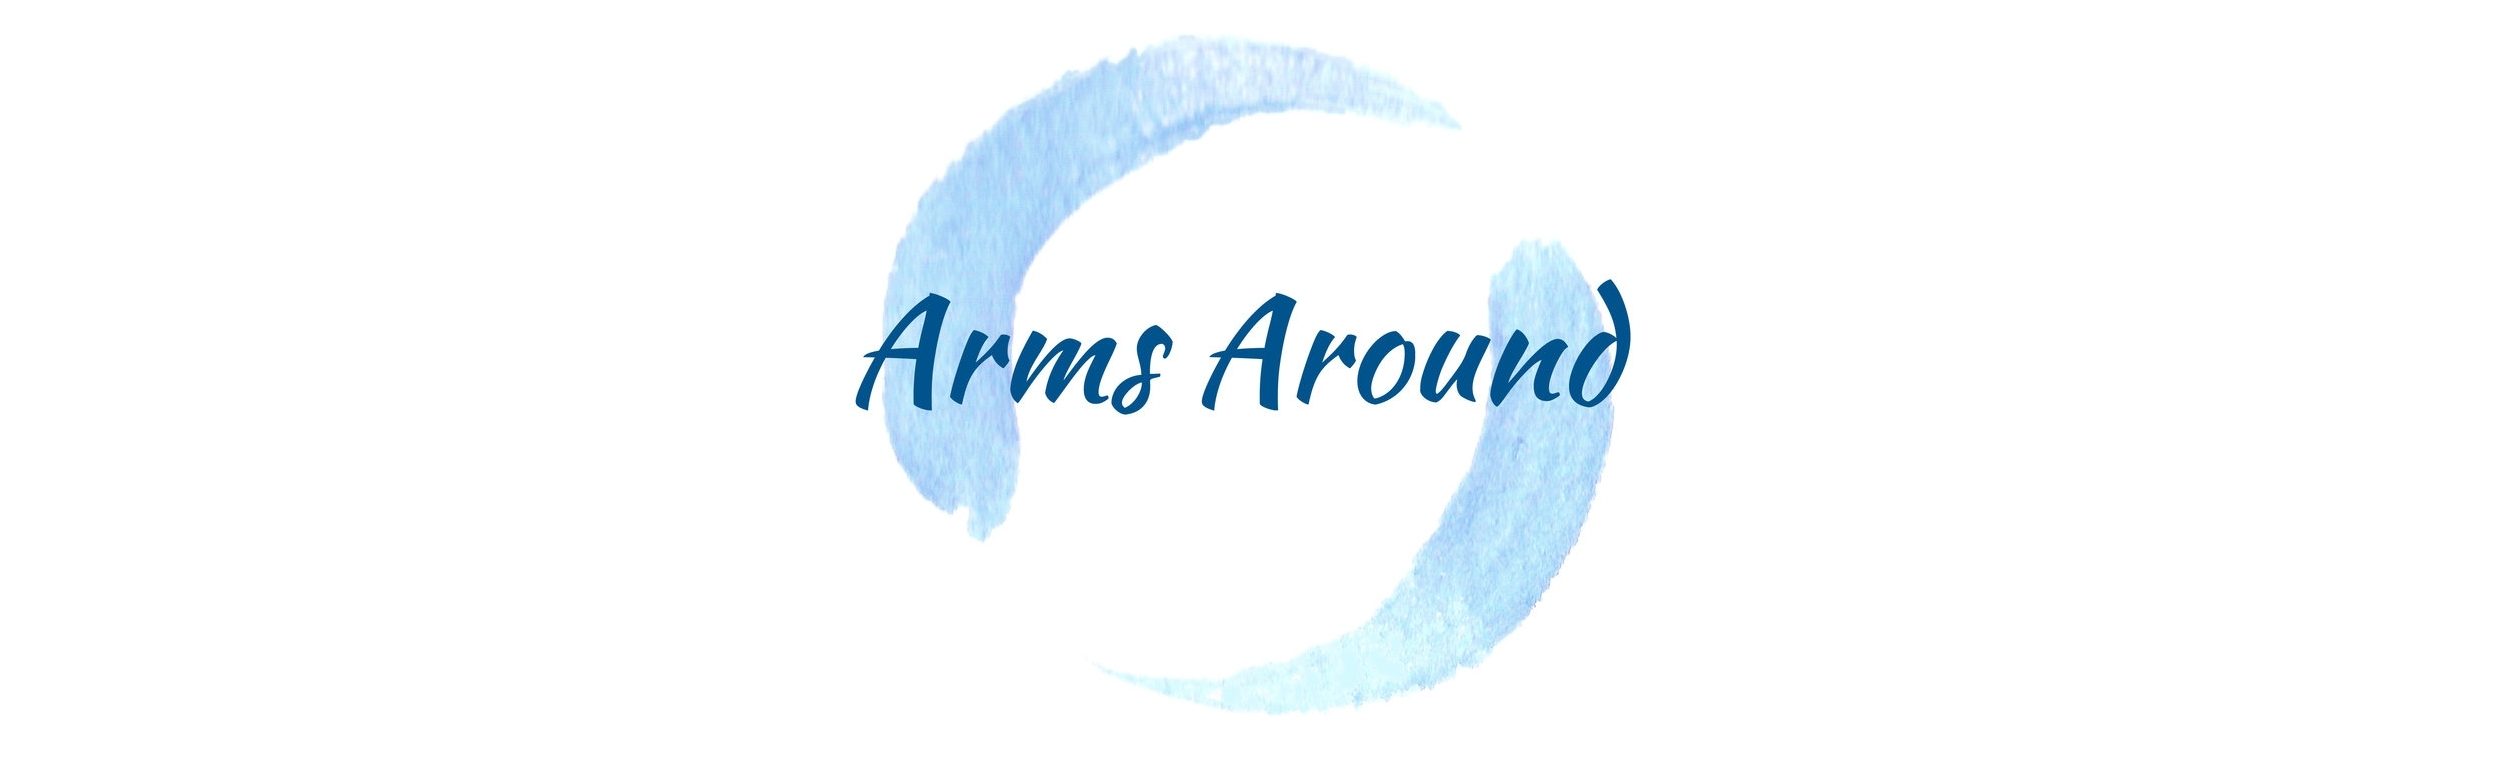 Arms Around Banner.jpg